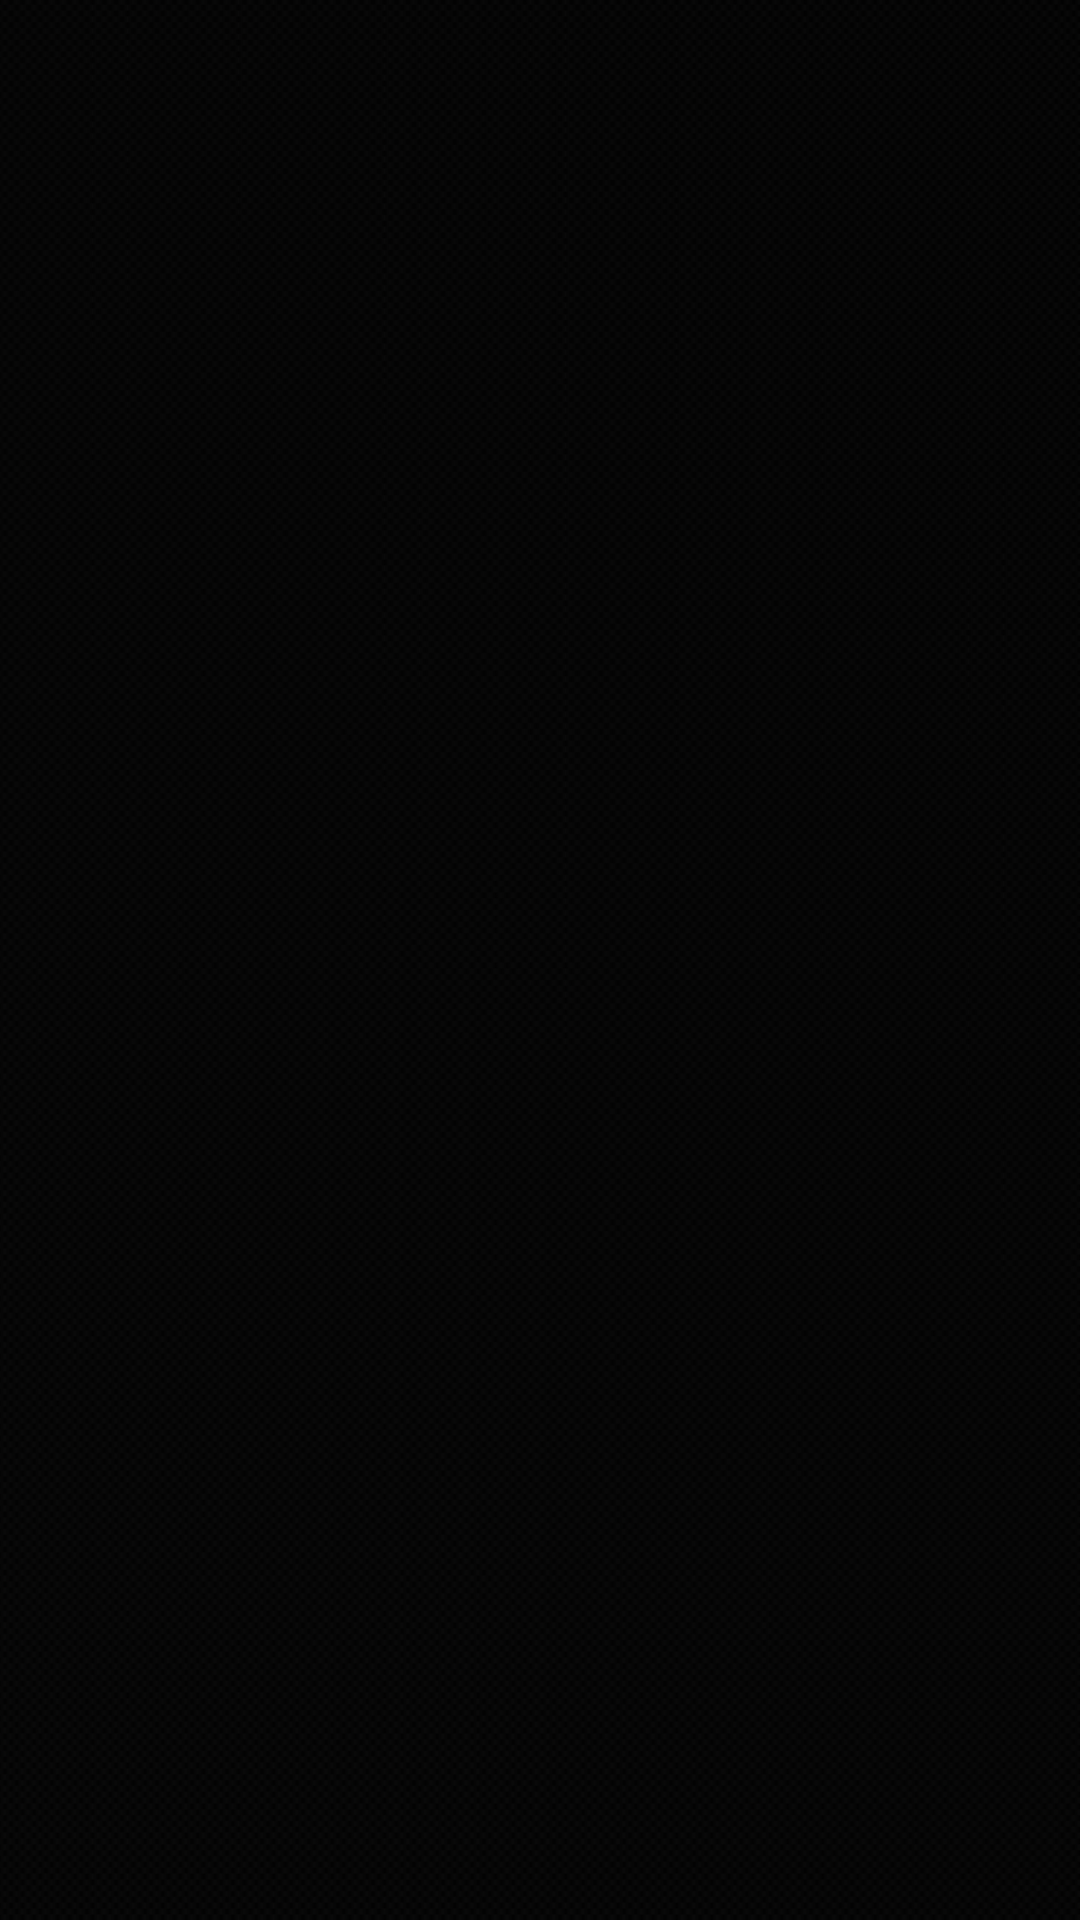 Incredible Black 1080 X 1920 FHD Wallpaper